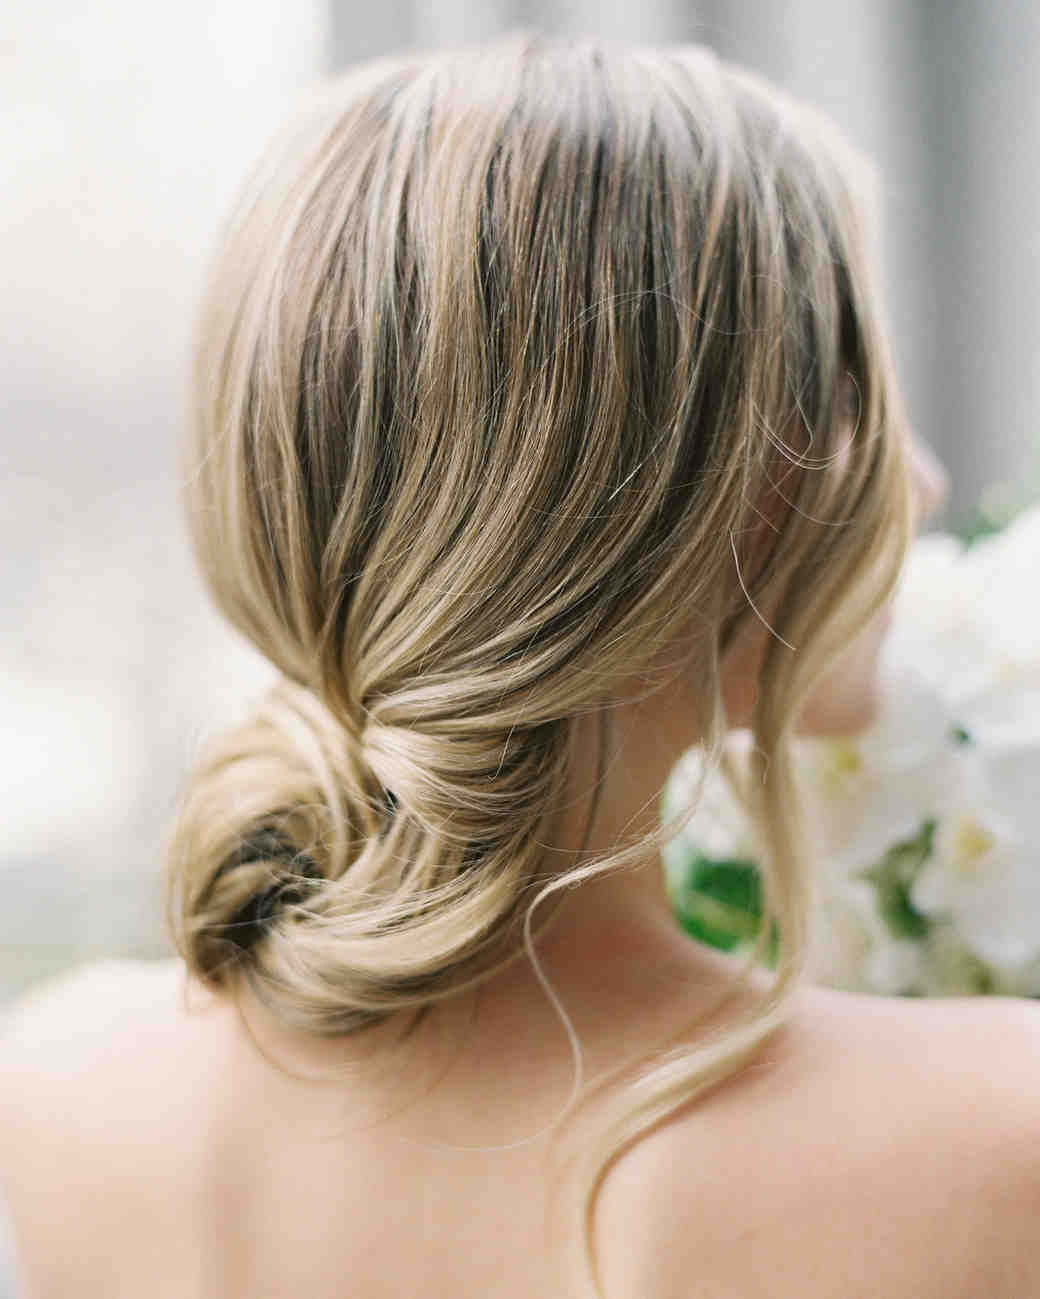 Simple Juda Hairstyle For Wedding: 55 Simple Wedding Hairstyles That Prove Less Is More